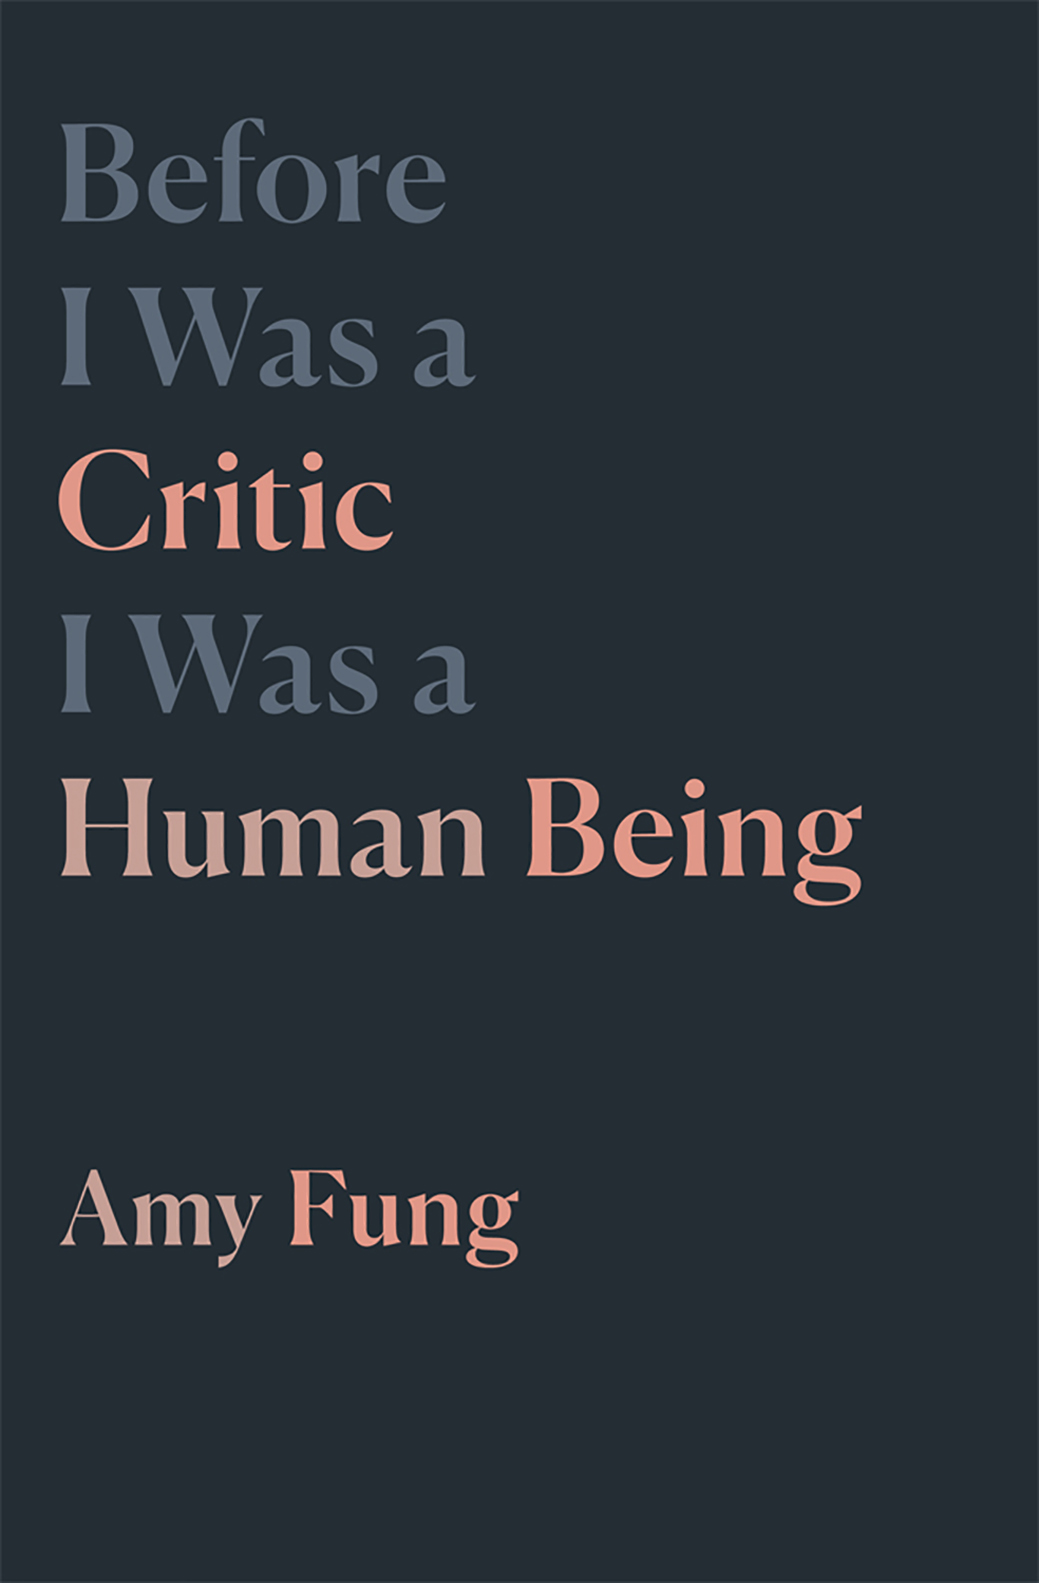 Before I Was a Critic I Was a Human Being